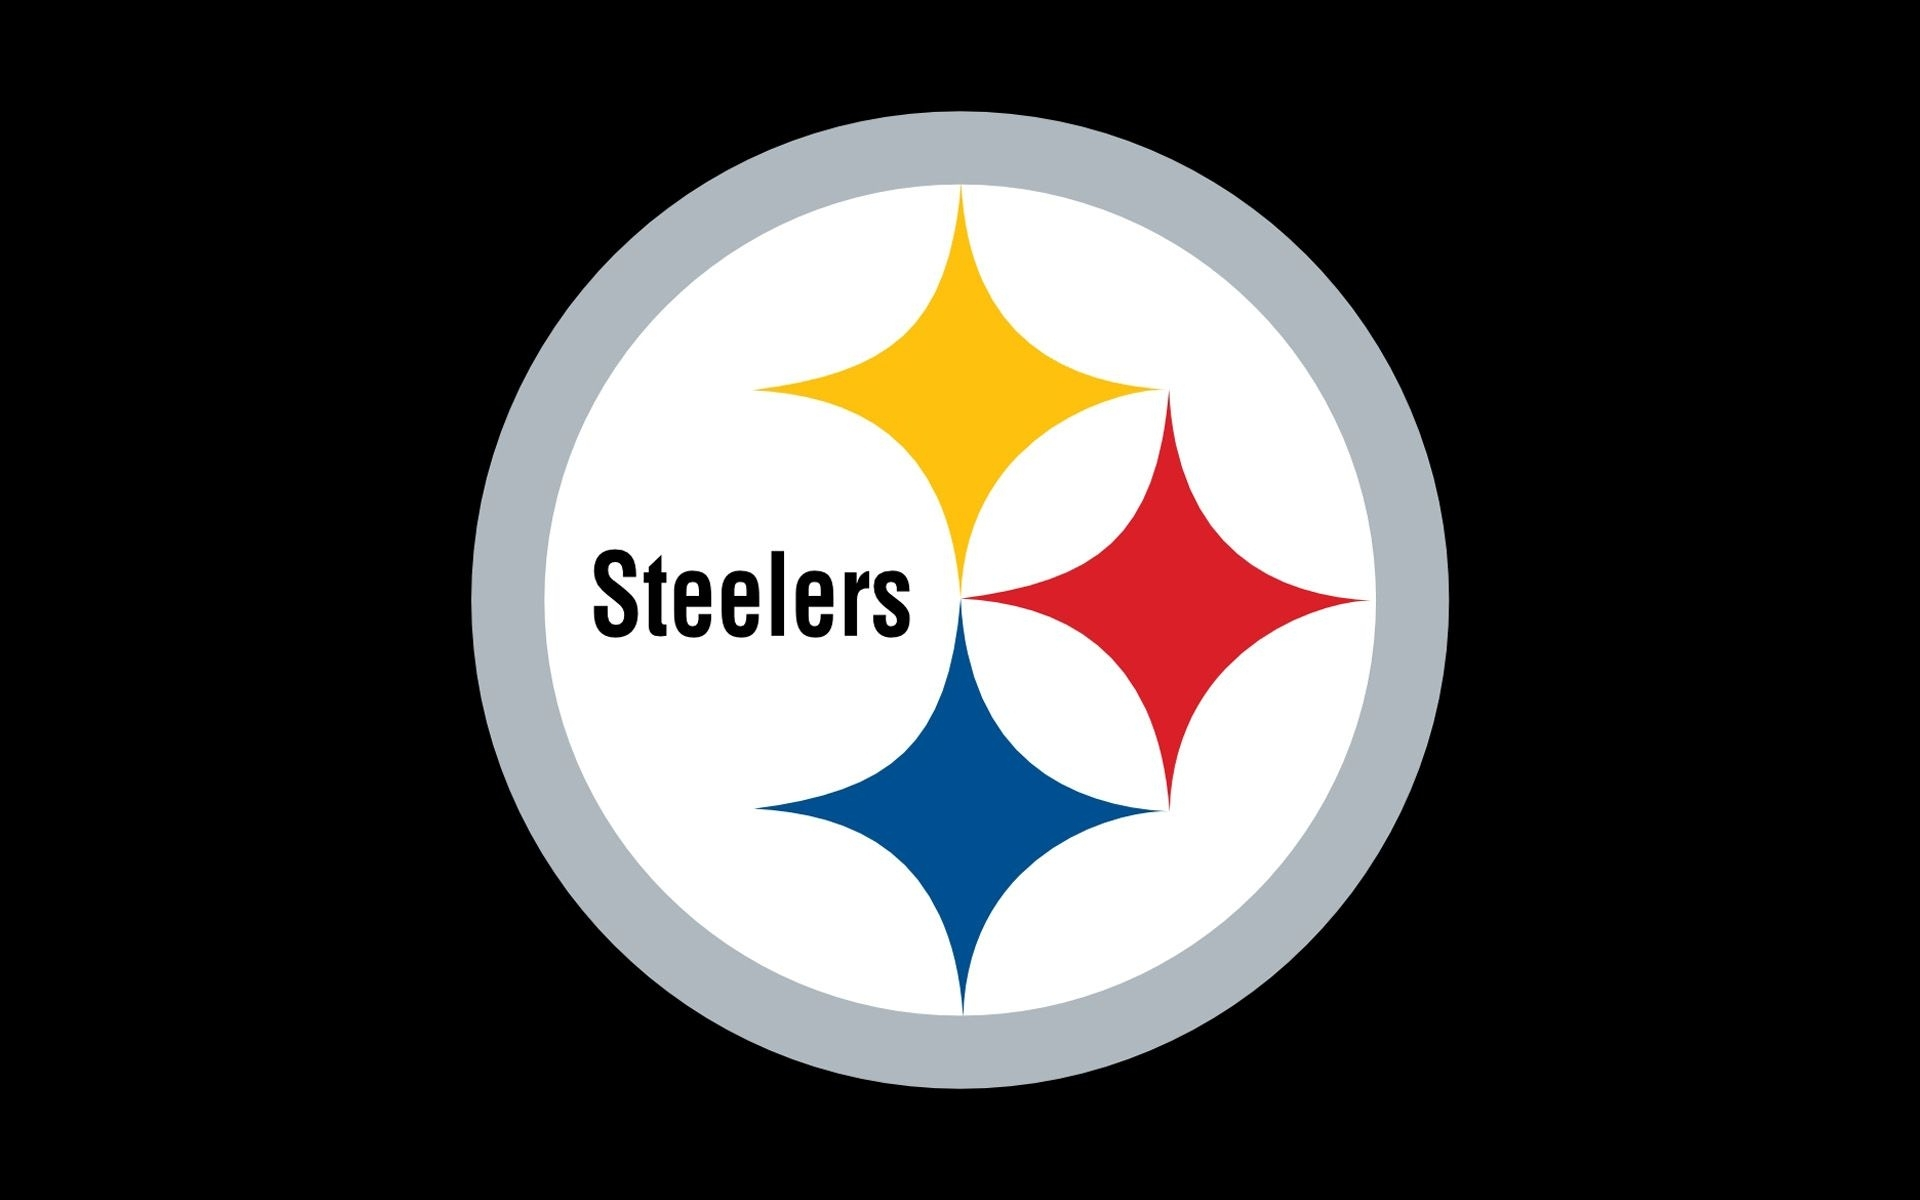 nfl steelers wallpaper | nfl pittsburgh steelers logo on black